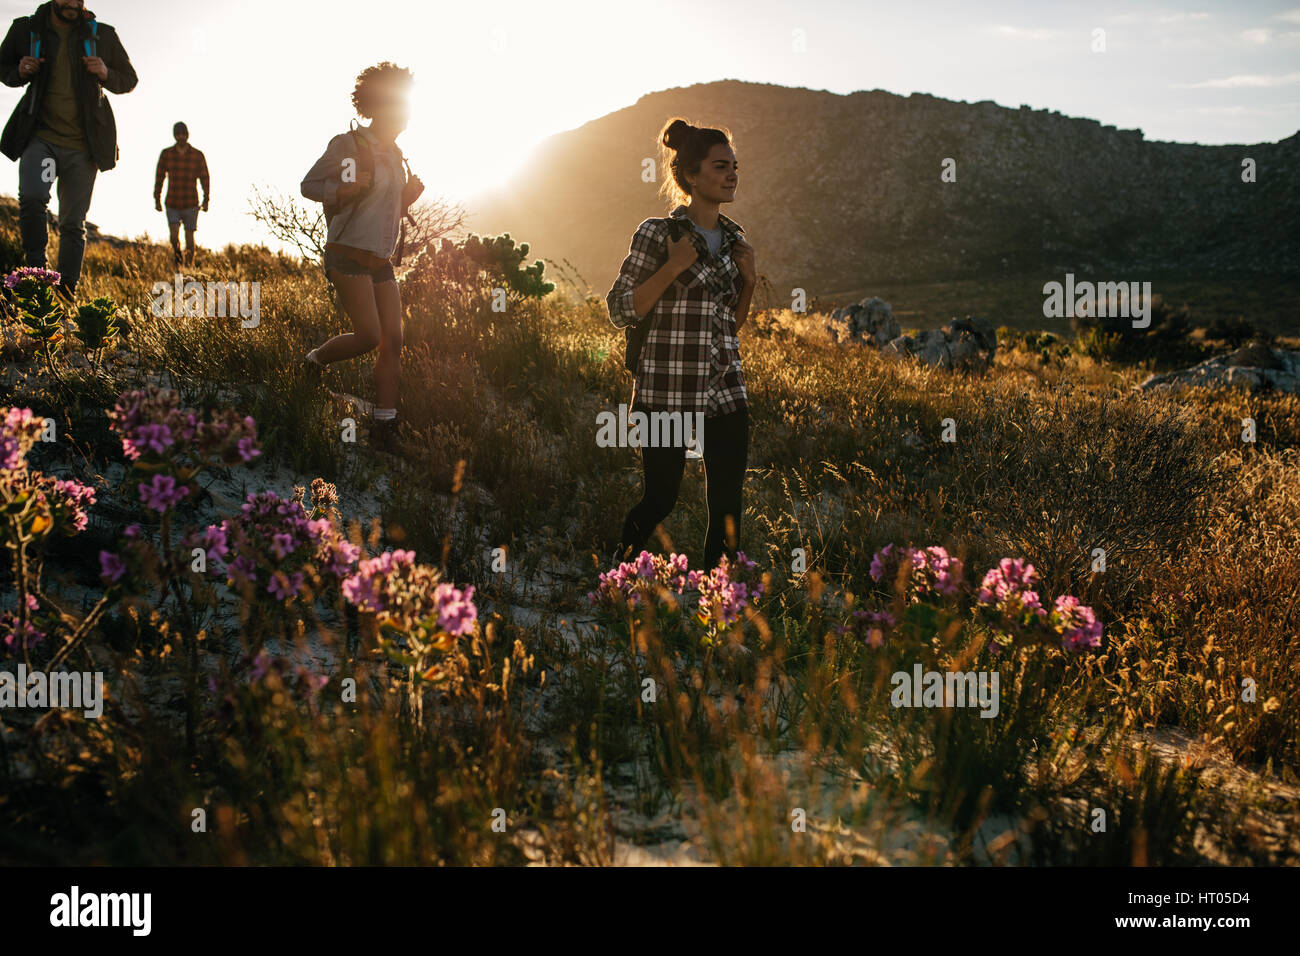 Group of friends are hiking in mountain on a sunny day. Four young people walking through countryside. - Stock Image